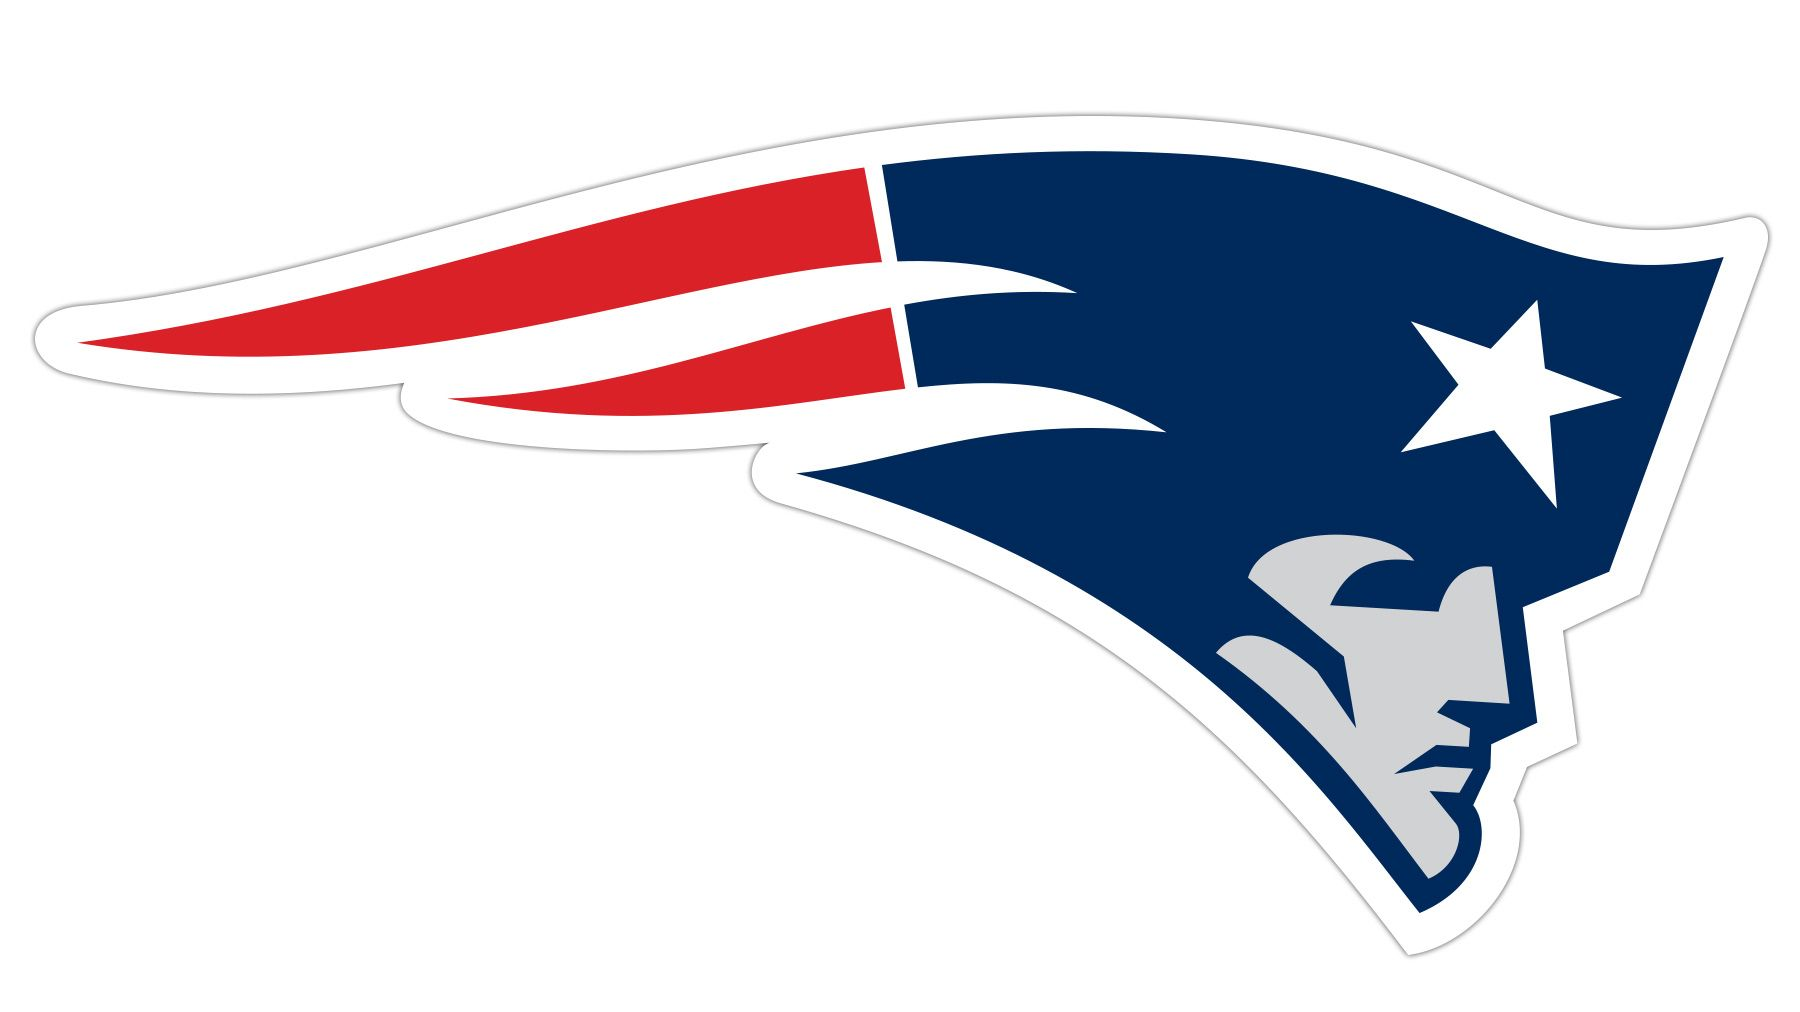 Patriots Football Logo - Official website of the New England Patriots